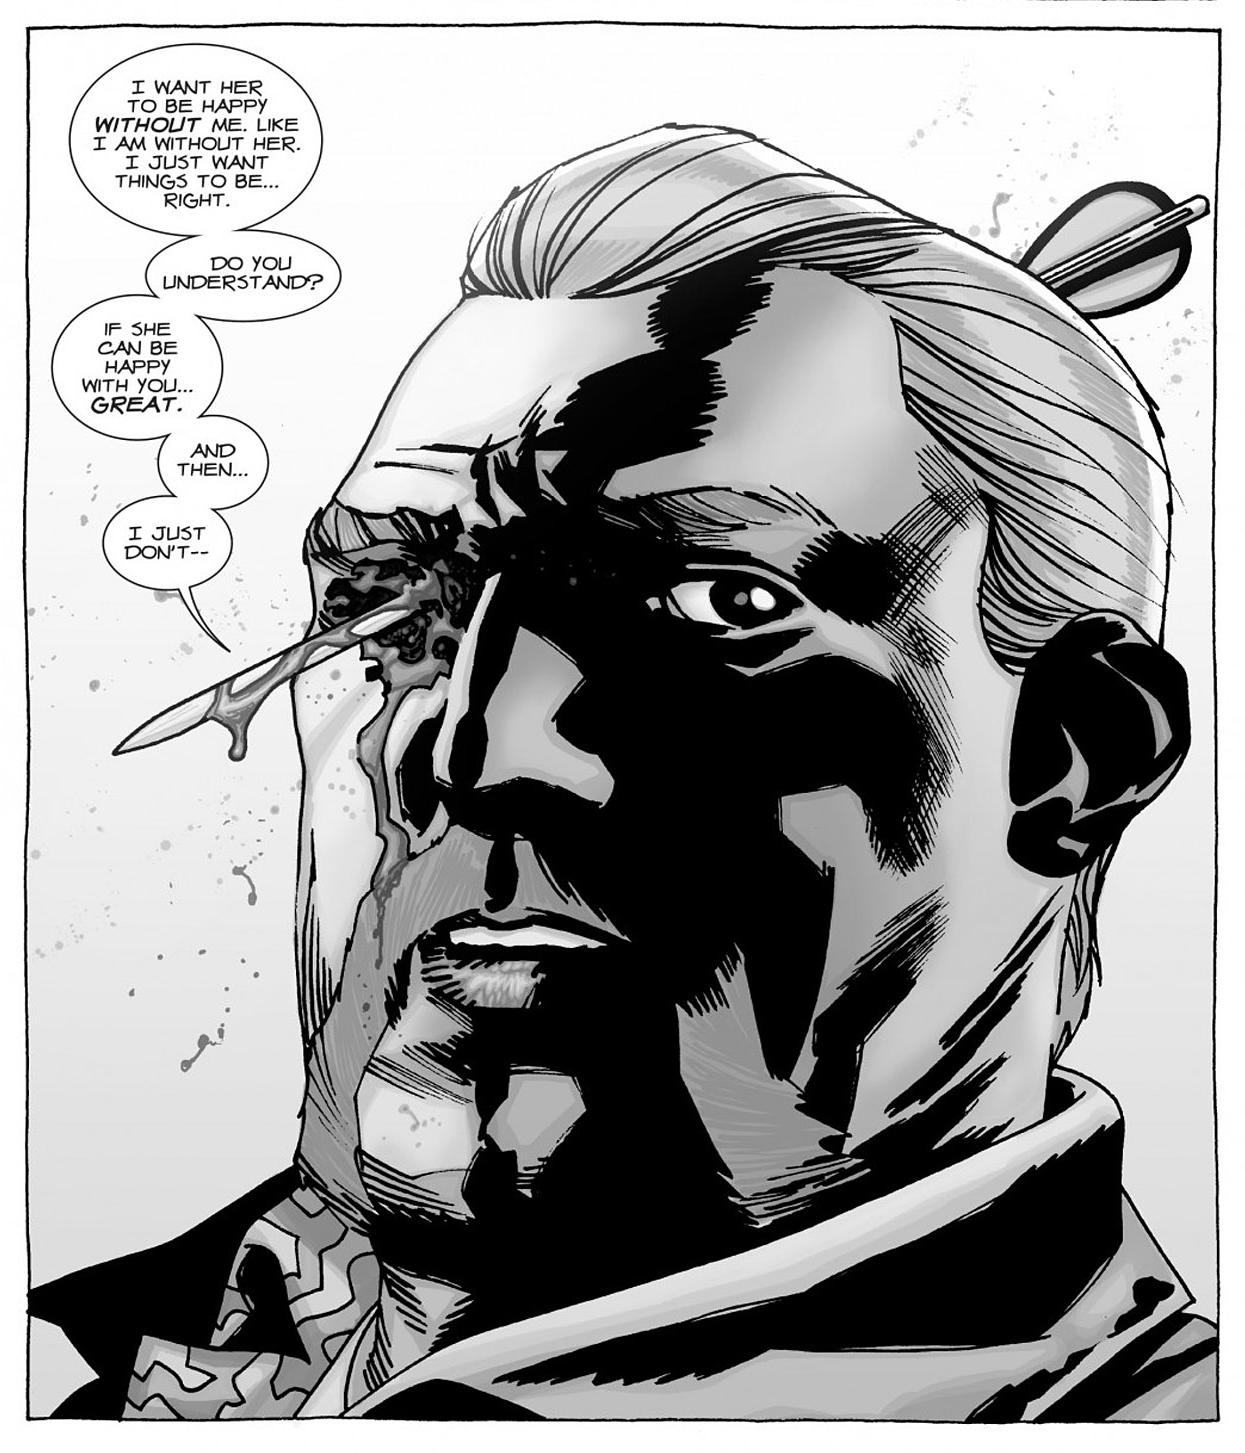 Abraham-Killed-in-The-Walking-Dead-Comic-Book